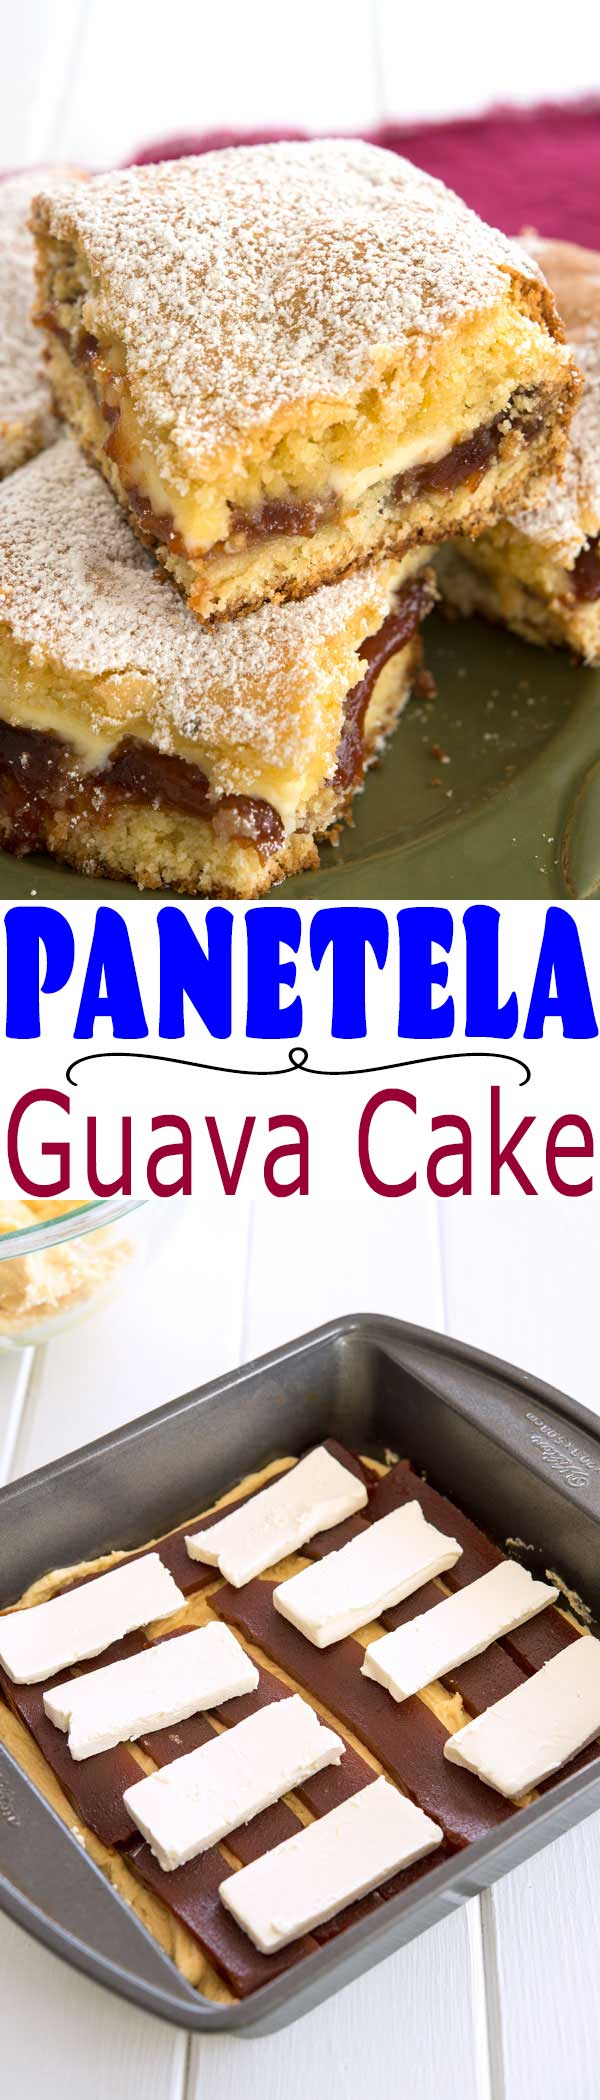 Cream cheese coffee cake meets the Caribbean with this guava cake recipe! | Cubana Panetela de Guayaba receta